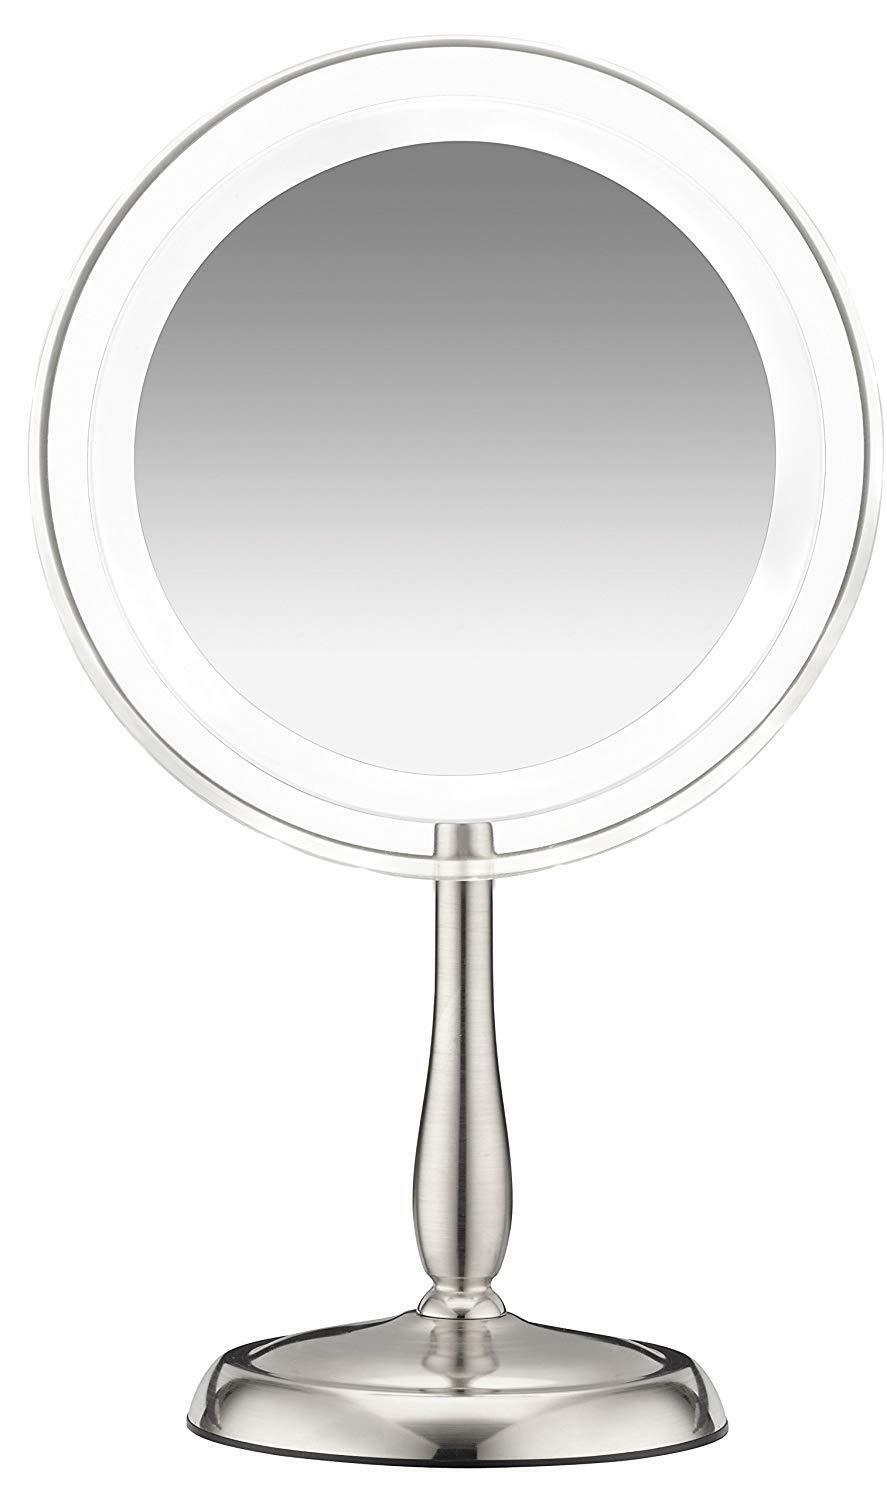 Conair Mirrors Magnifiers BE118 DoubleSided 10x1x Polished